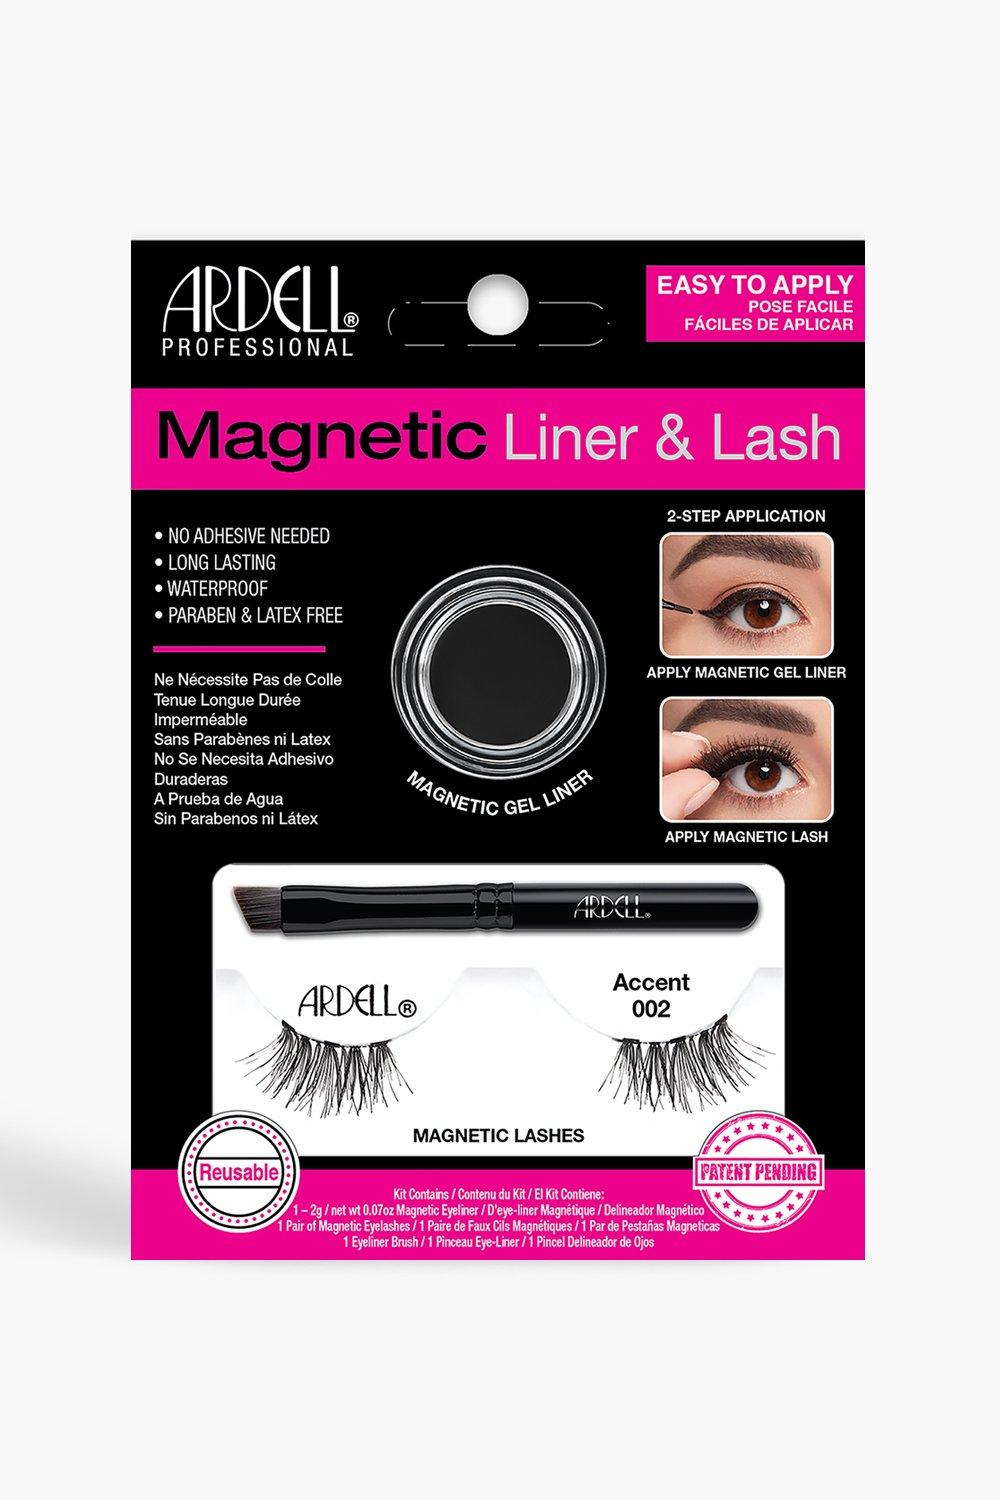 Ardell Womens Ardell Magnetic Accent 002 Lash Kit - Black - One Size, Black